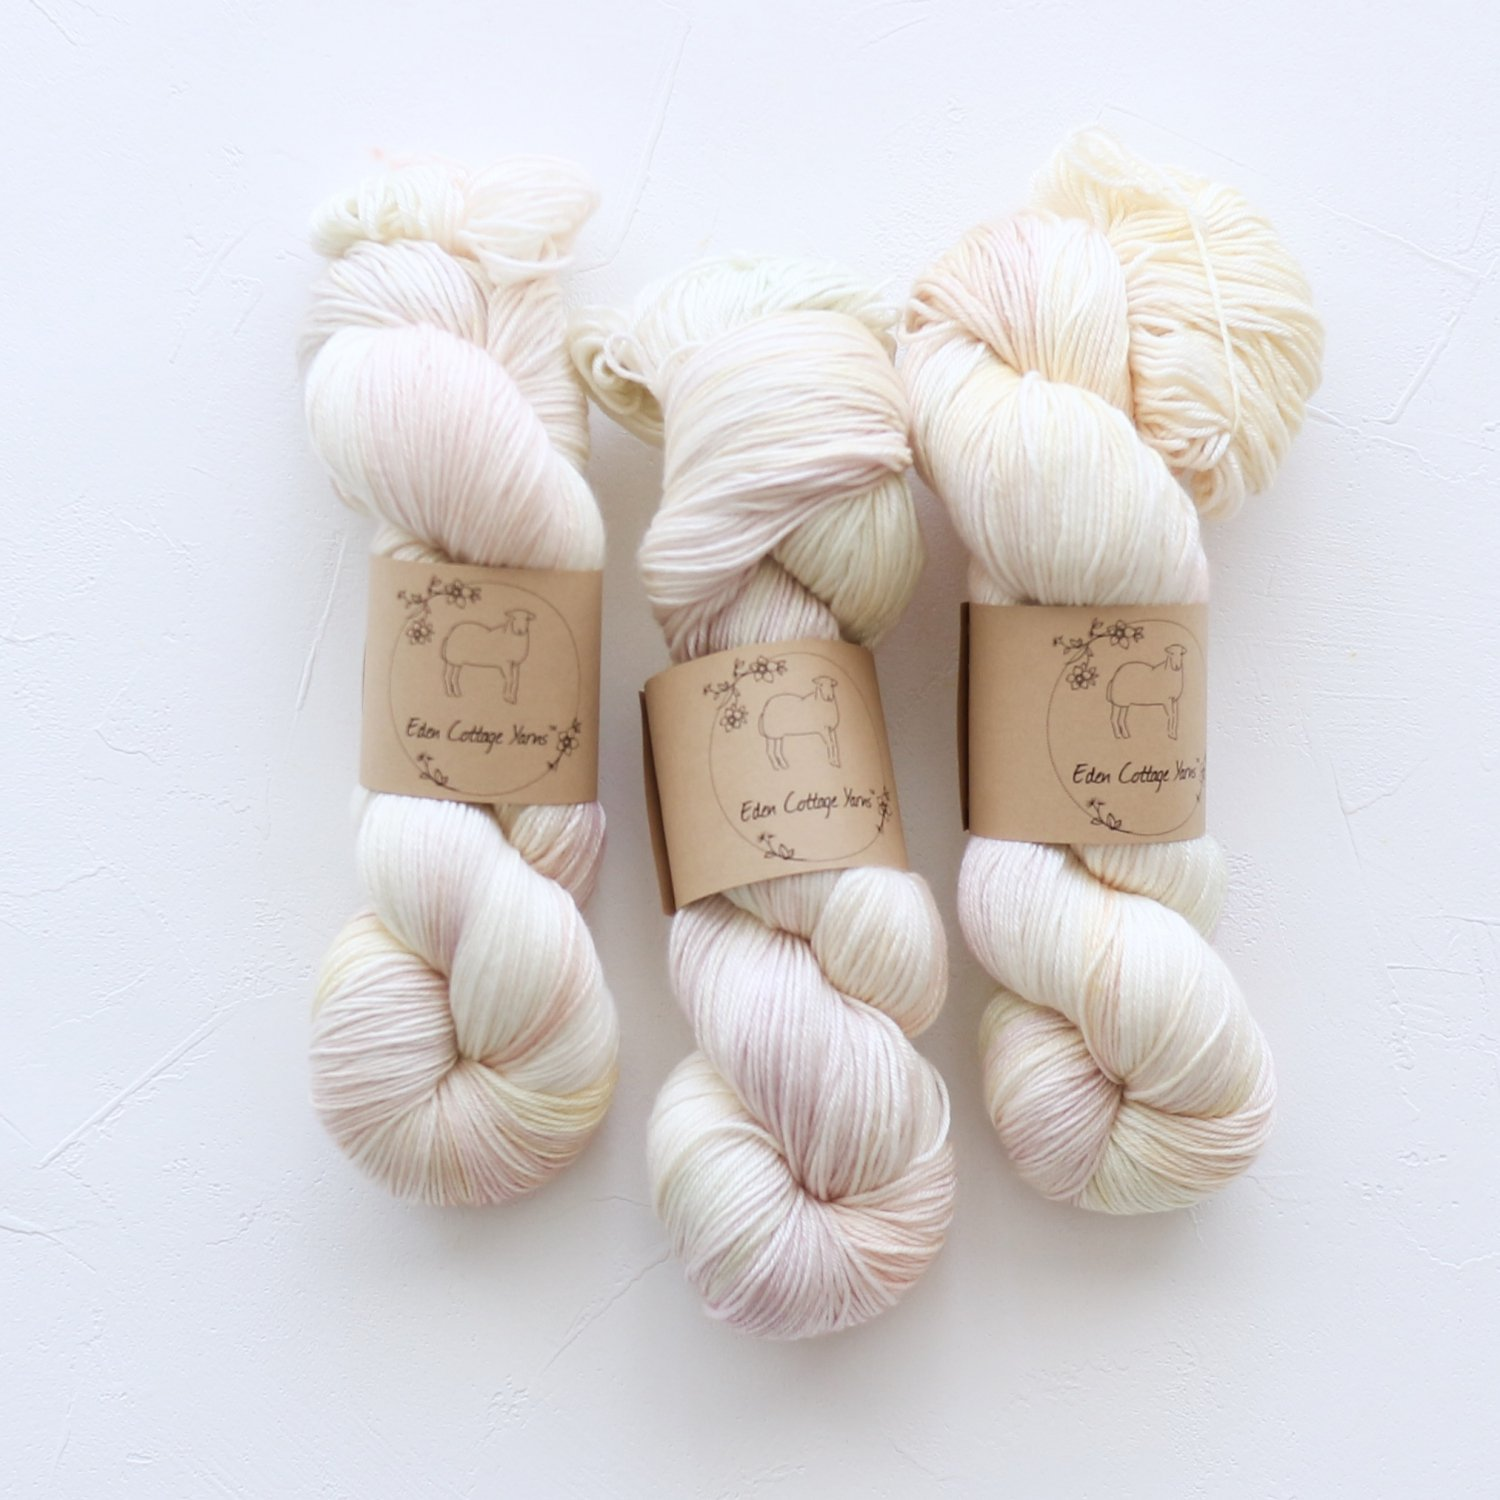 【Eden Cottage Yarns】<br>Titus 4ply<br>Spring Bulbs